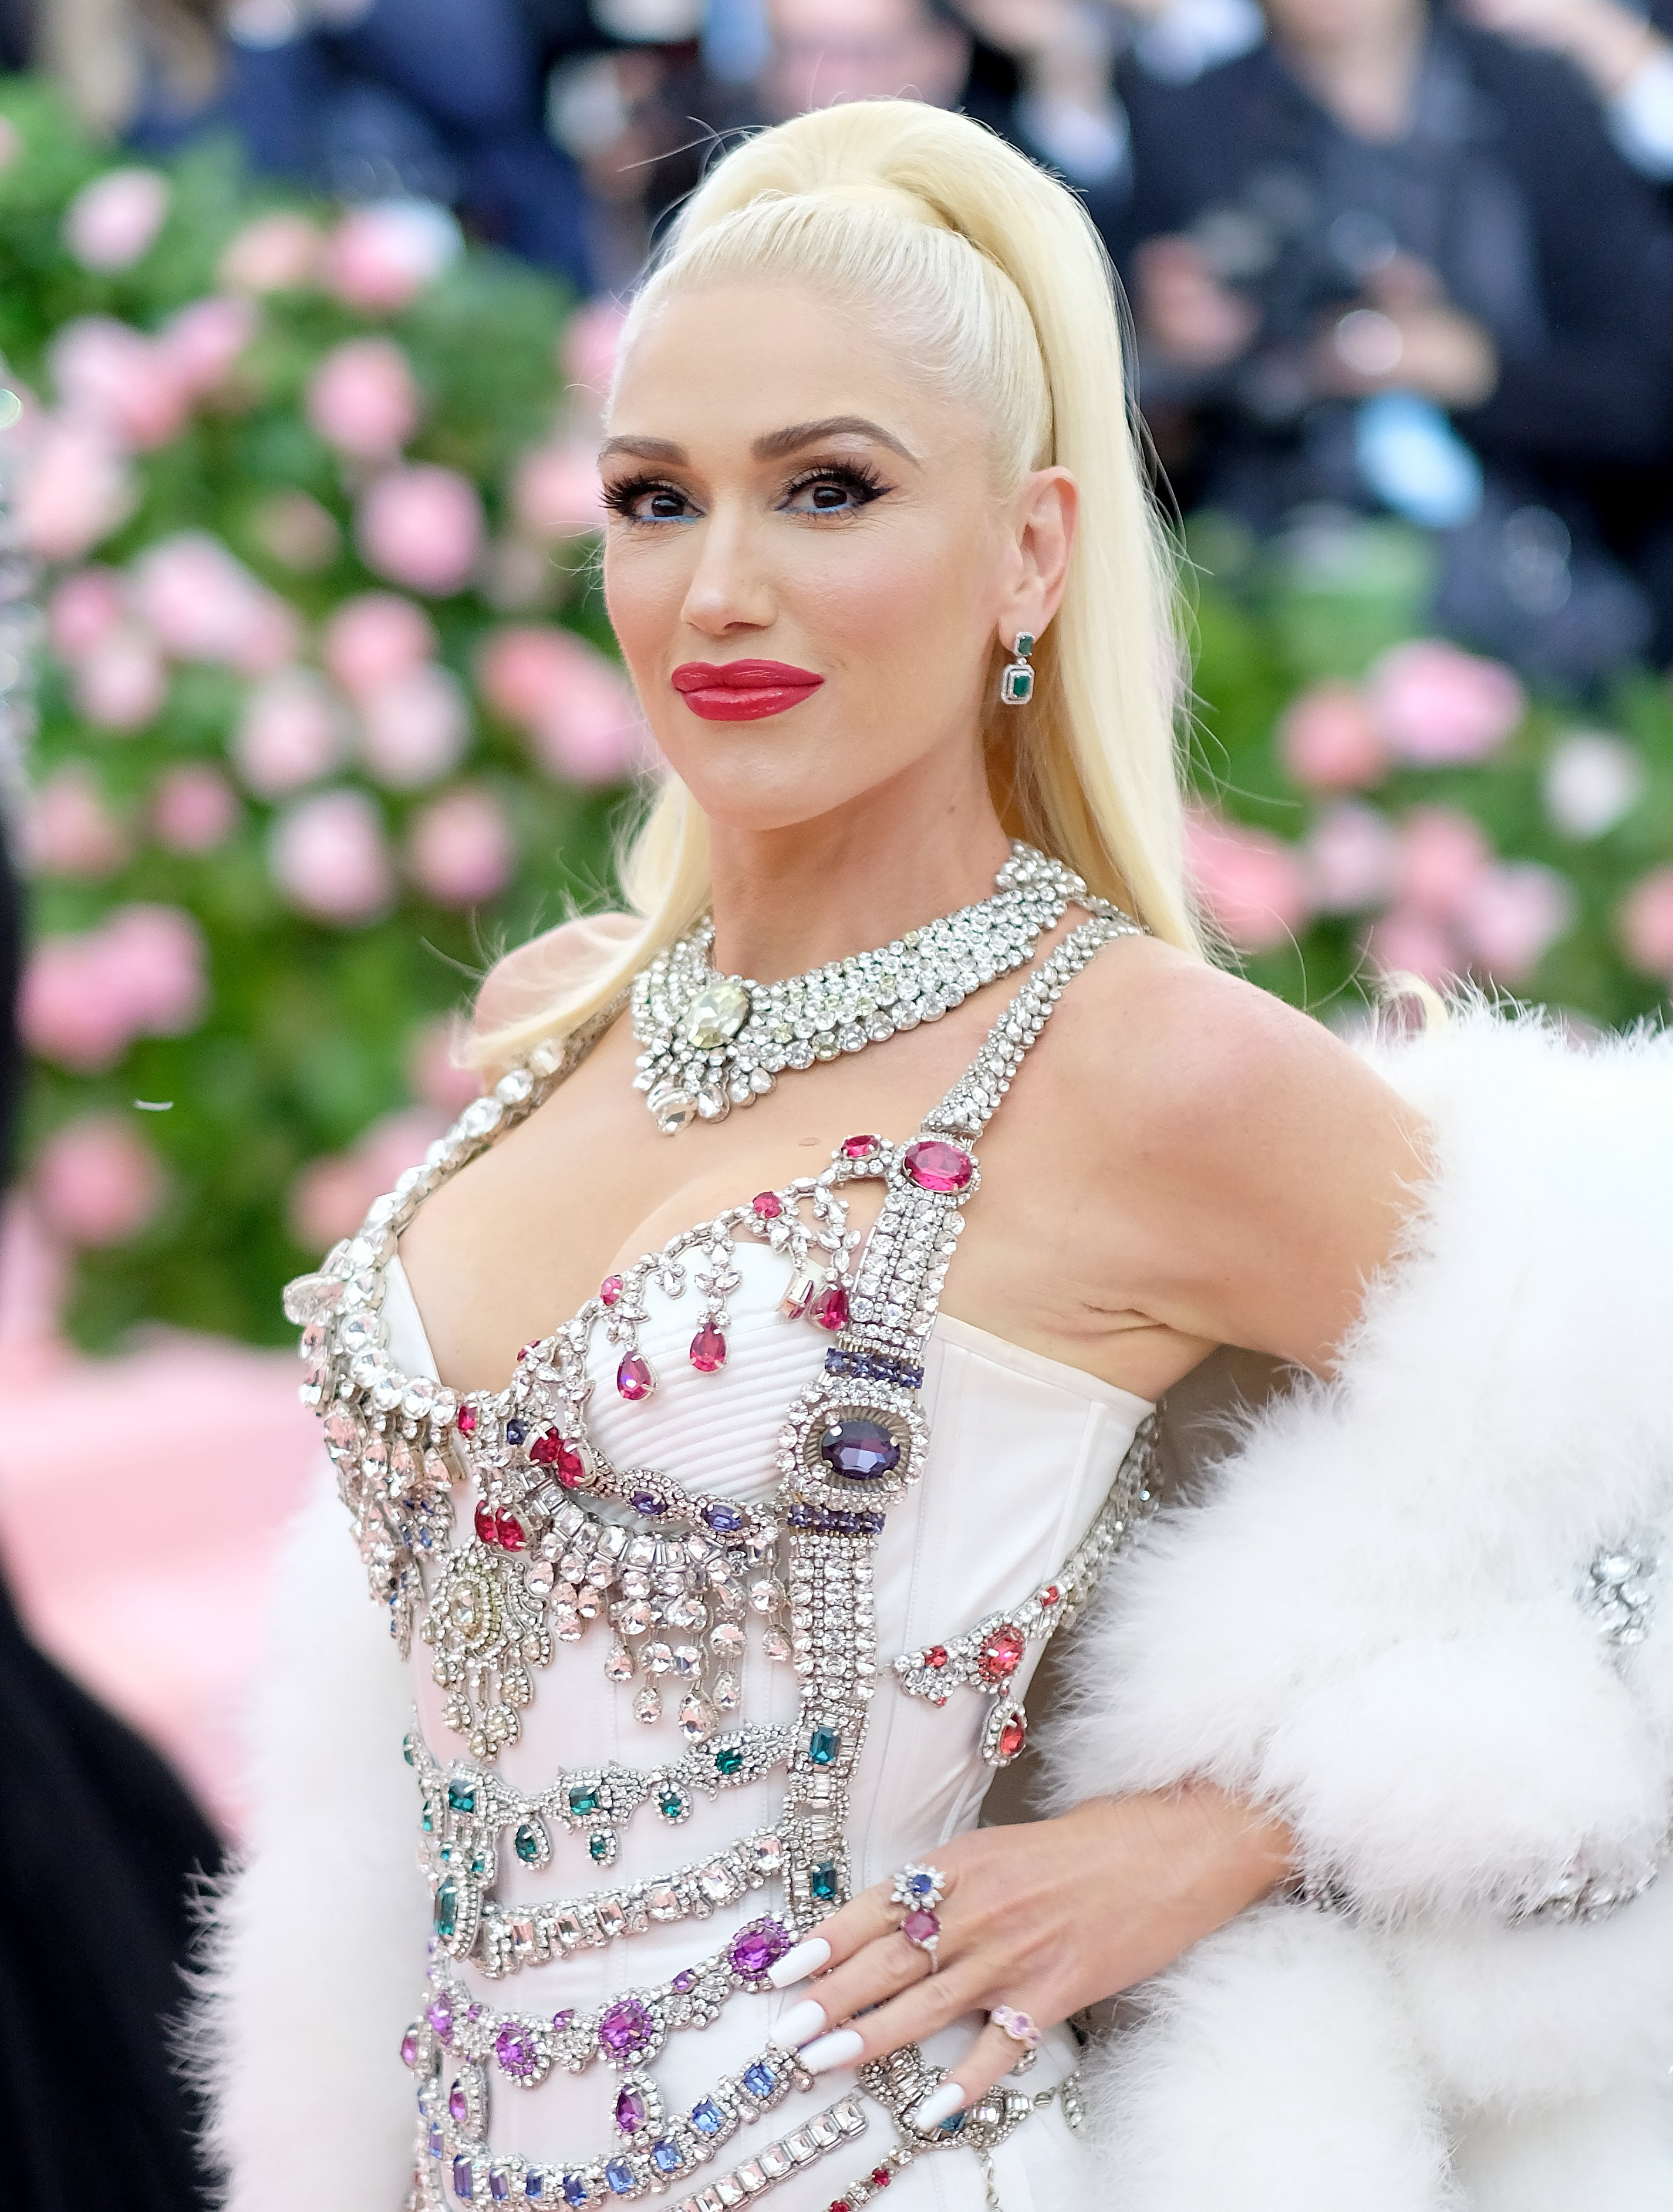 Gwen Stefani attends the Met Gala Celebrating Camp in New York City on May 6, 2019 | Photo: Getty Images